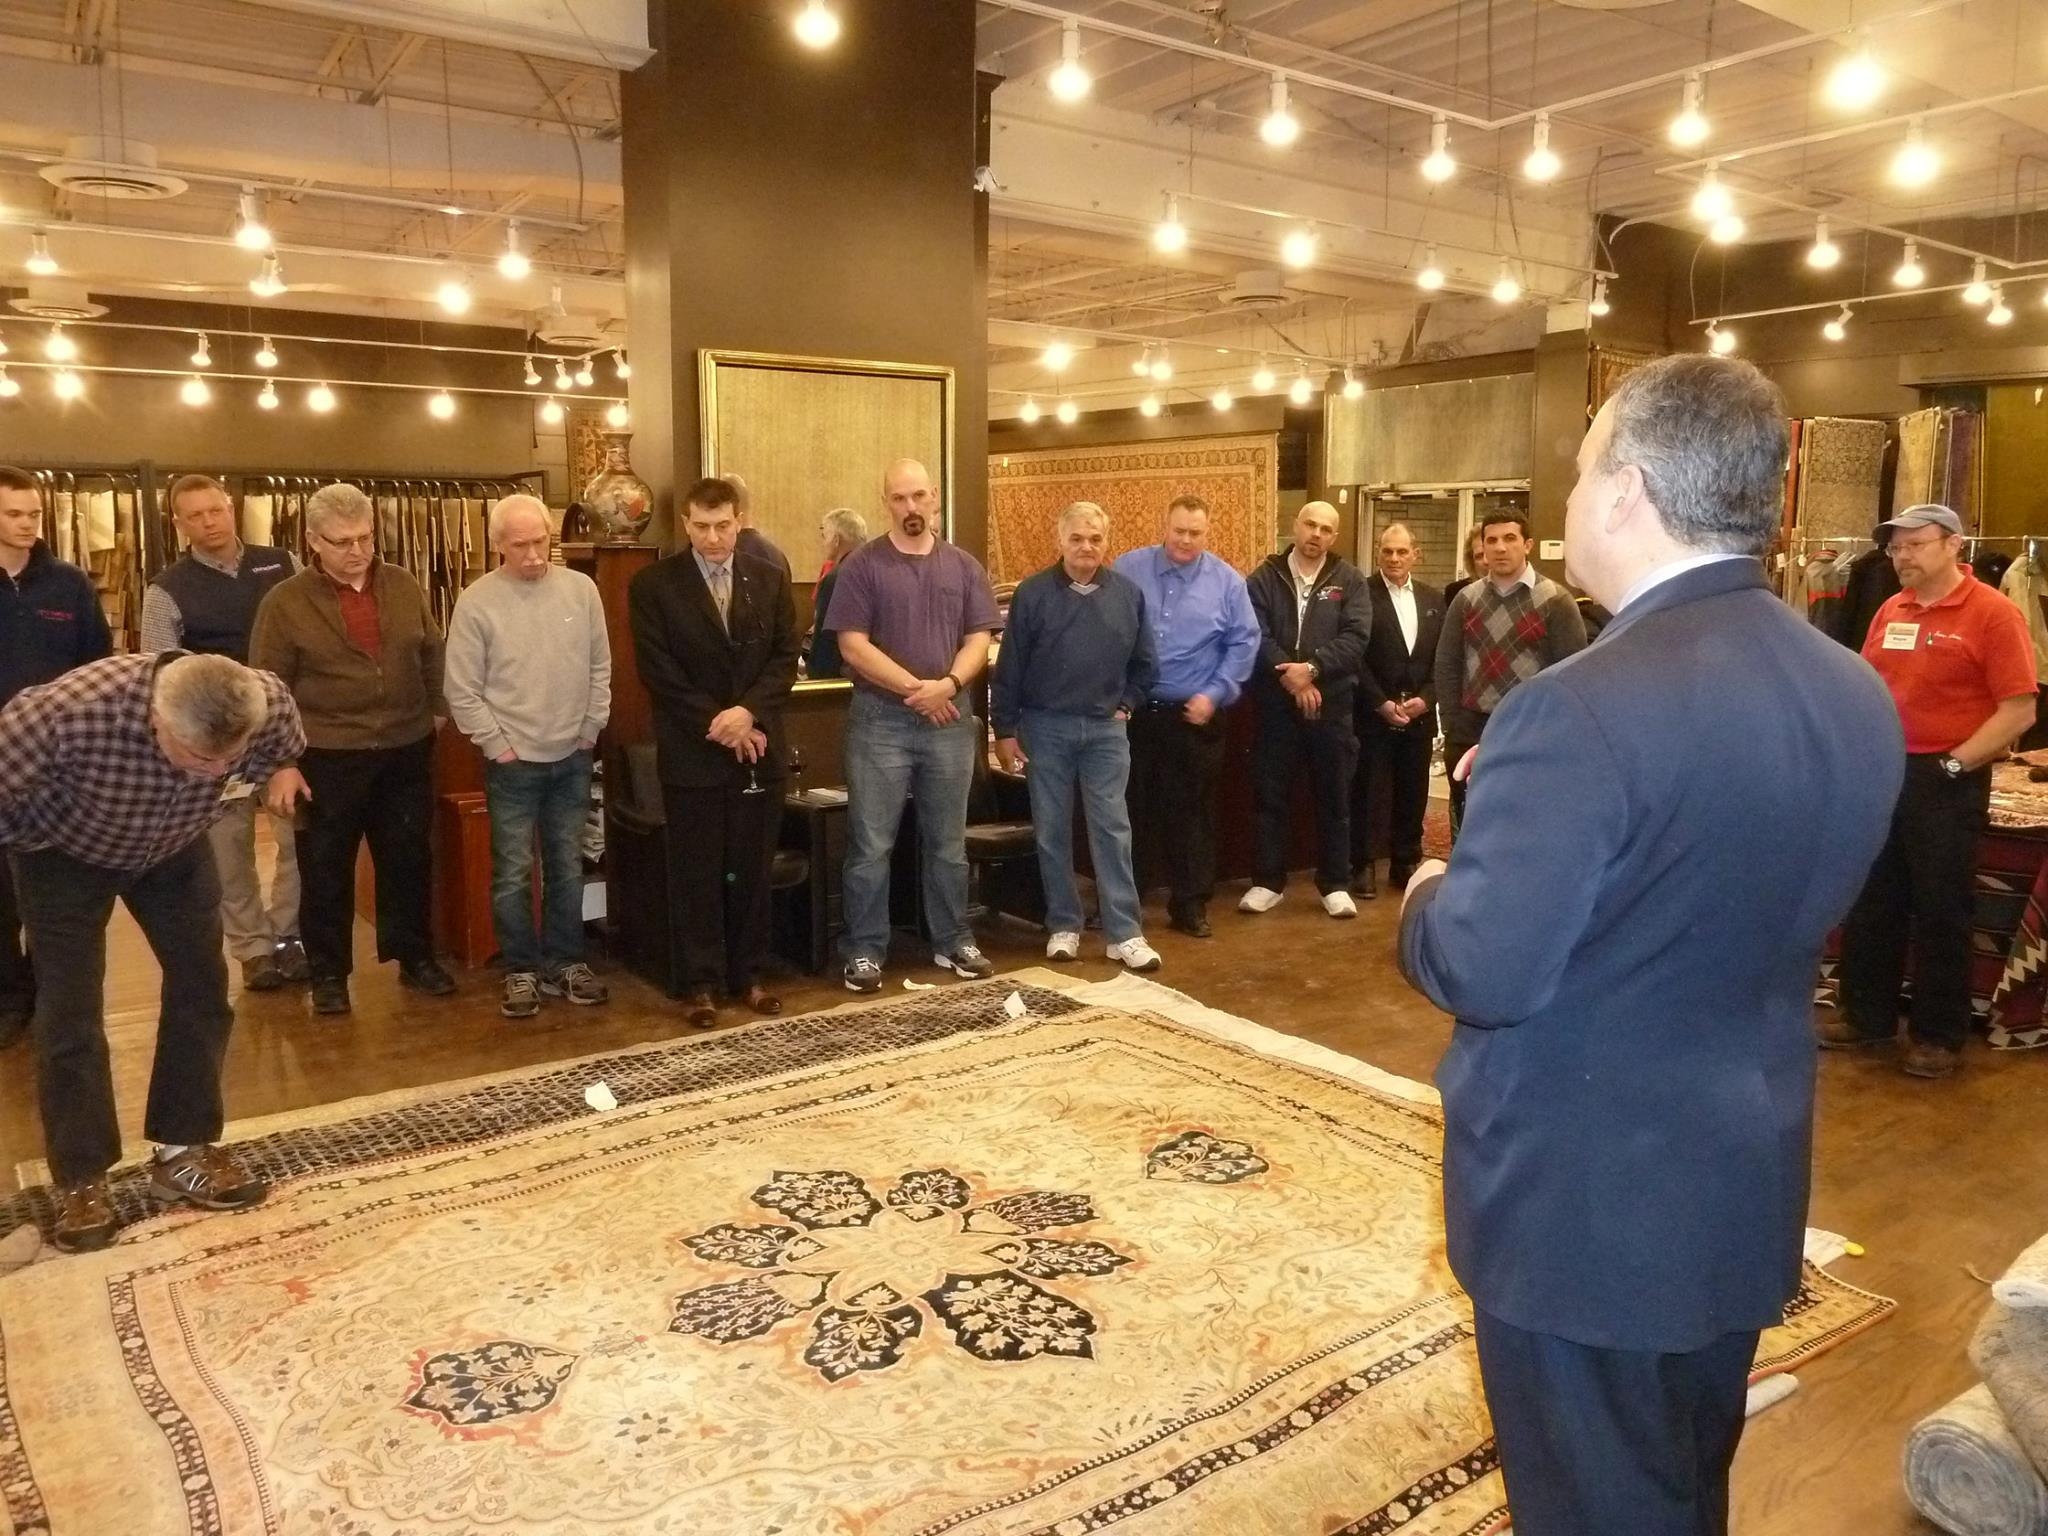 An Armenian Buffet Dinner And Drinks Were Served At The Wednesday, Feb. 18  Event. We Brought In Our Own Rug Repair Specialists To Demonstrate The Art  Of ...